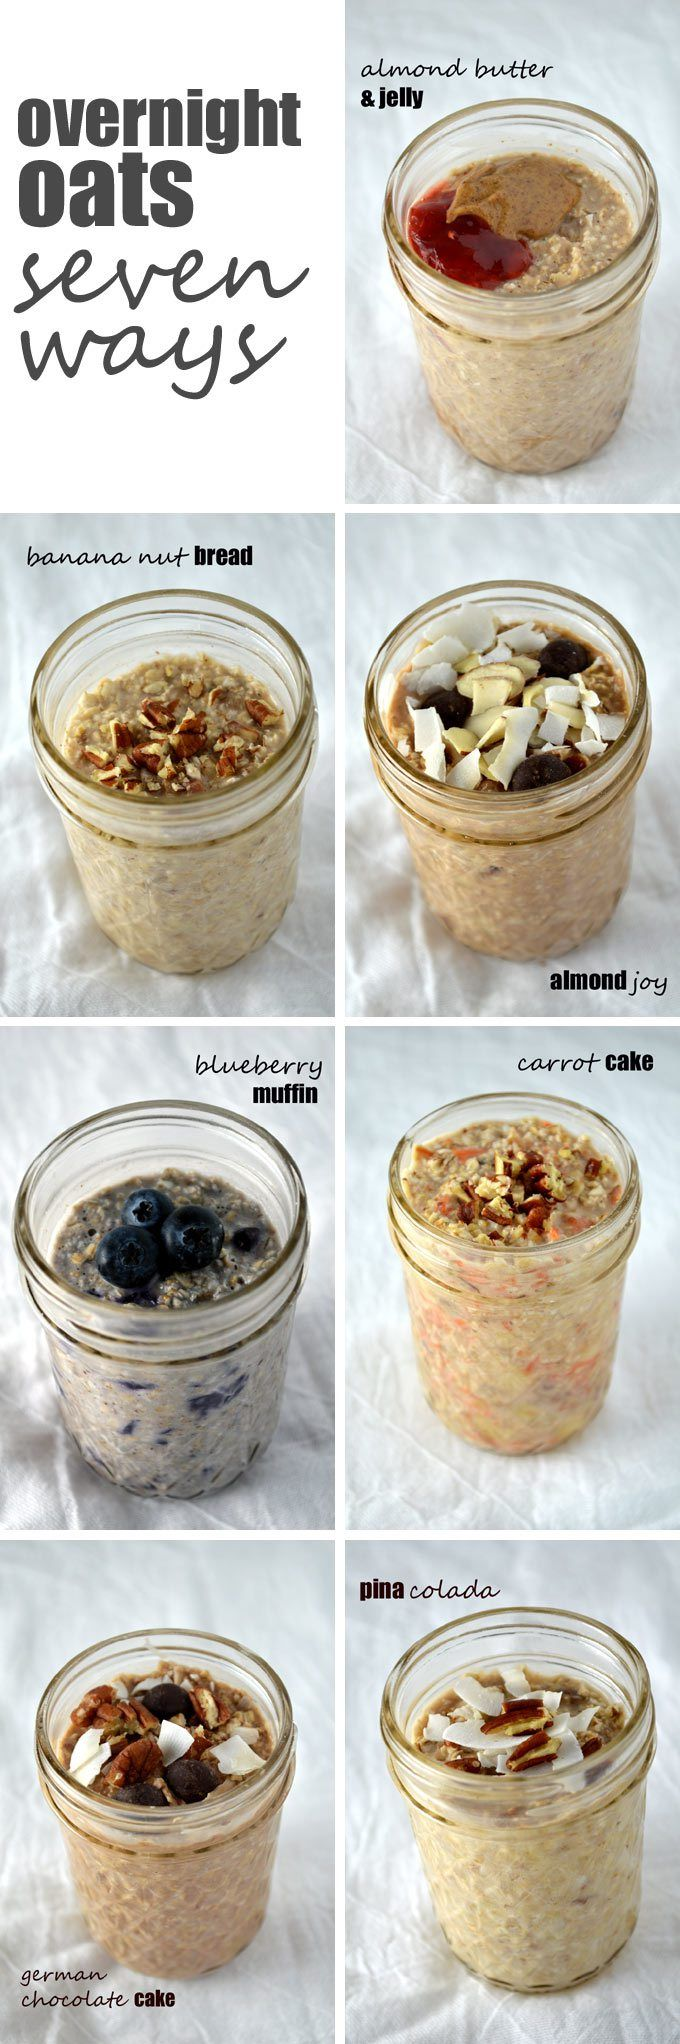 """Overnight Oats Seven Ways @AnotherRoot. This sounds so good and I like the """"make several jars ahead of time"""" option."""